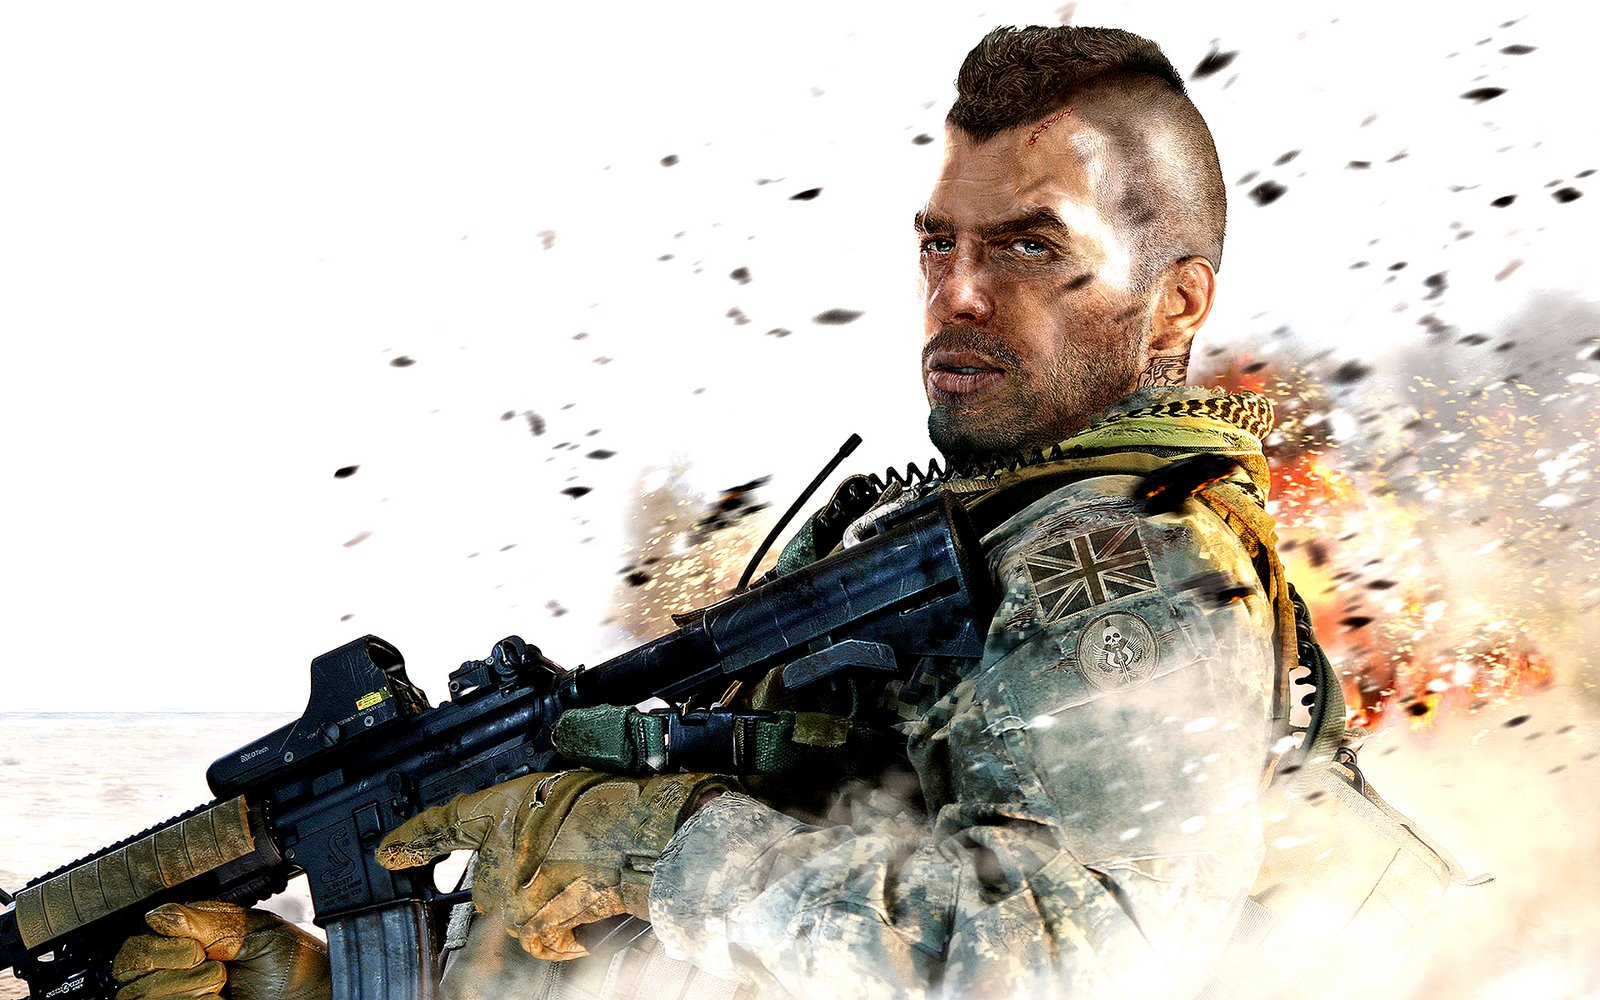 call of duty hd wallpapers call of duty hd wallpapers call of duty hd ...